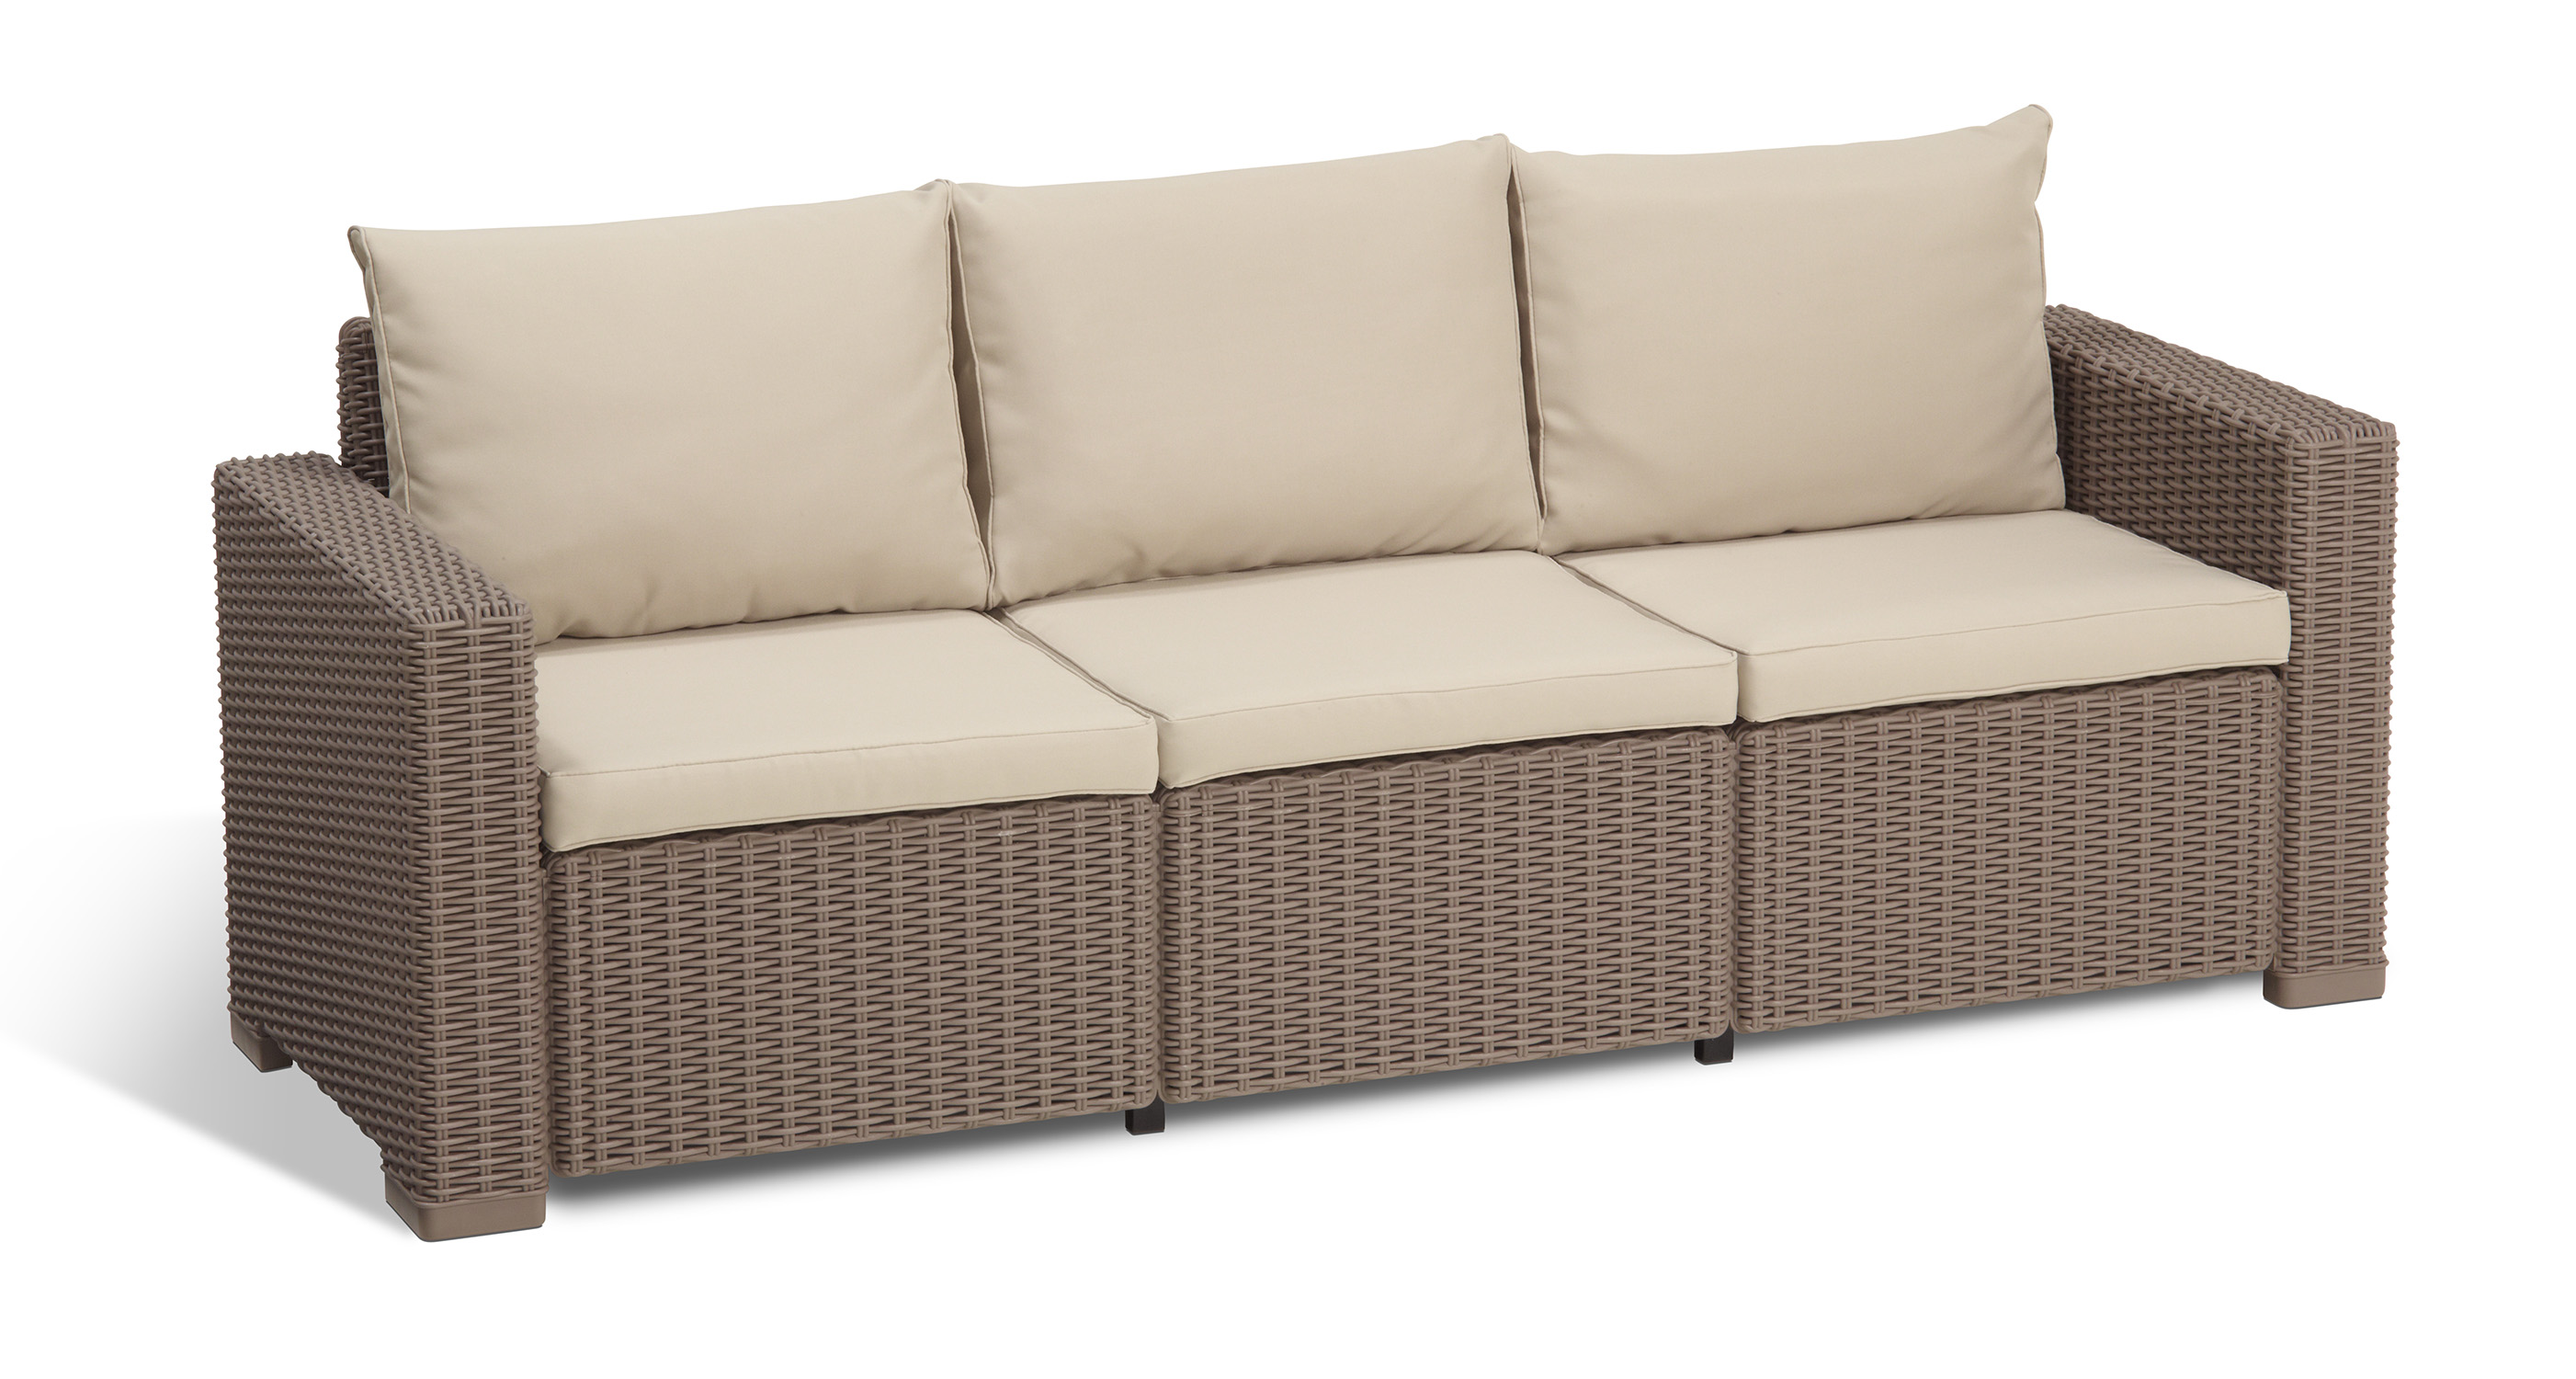 Rattan 3 Piece Sofa Keter California 3 Seater Outdoor Seating Patio Sofa In Resin Rattan Wicker With Cushions Cappuccino